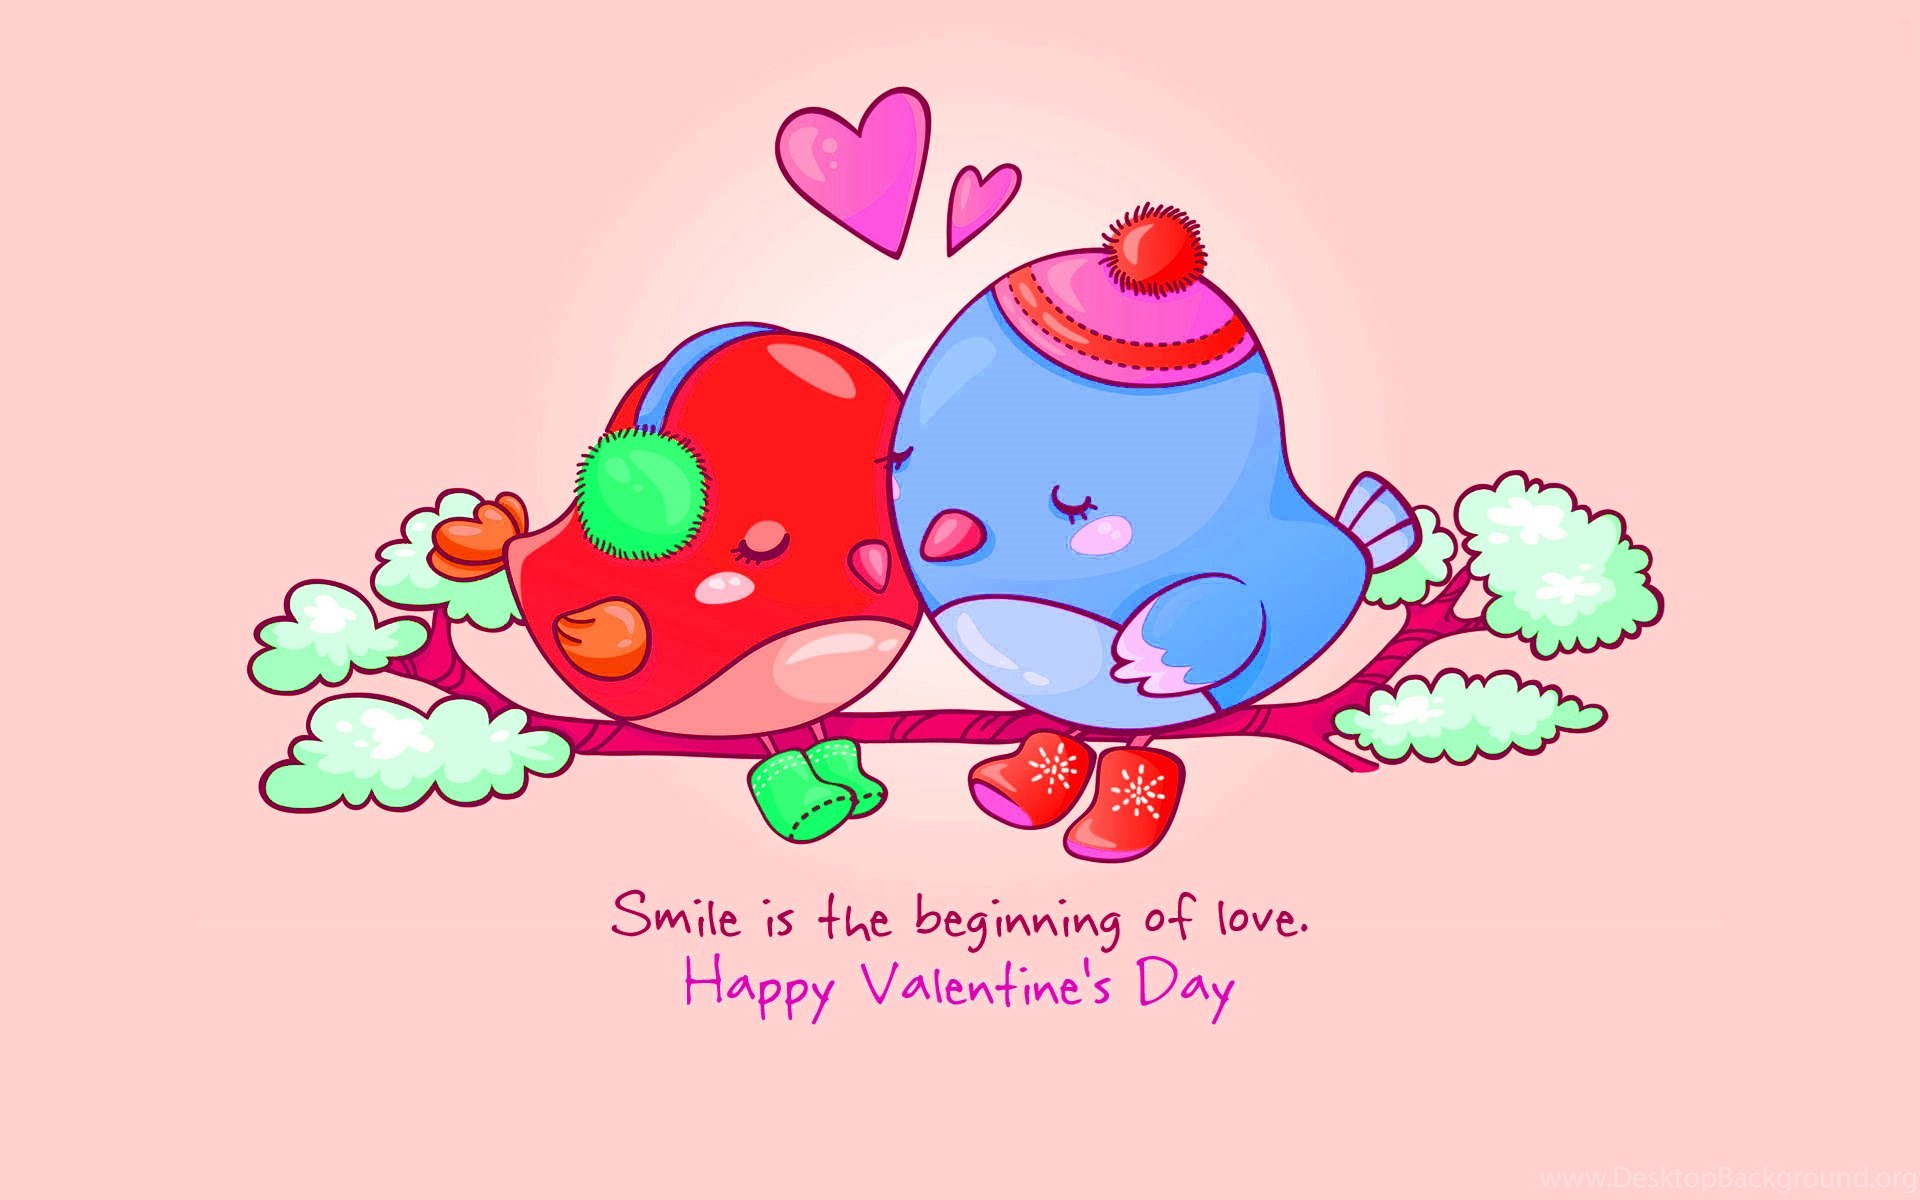 Valentine Day Greetings With Cute Love Hd Wallpapers Desktop Background